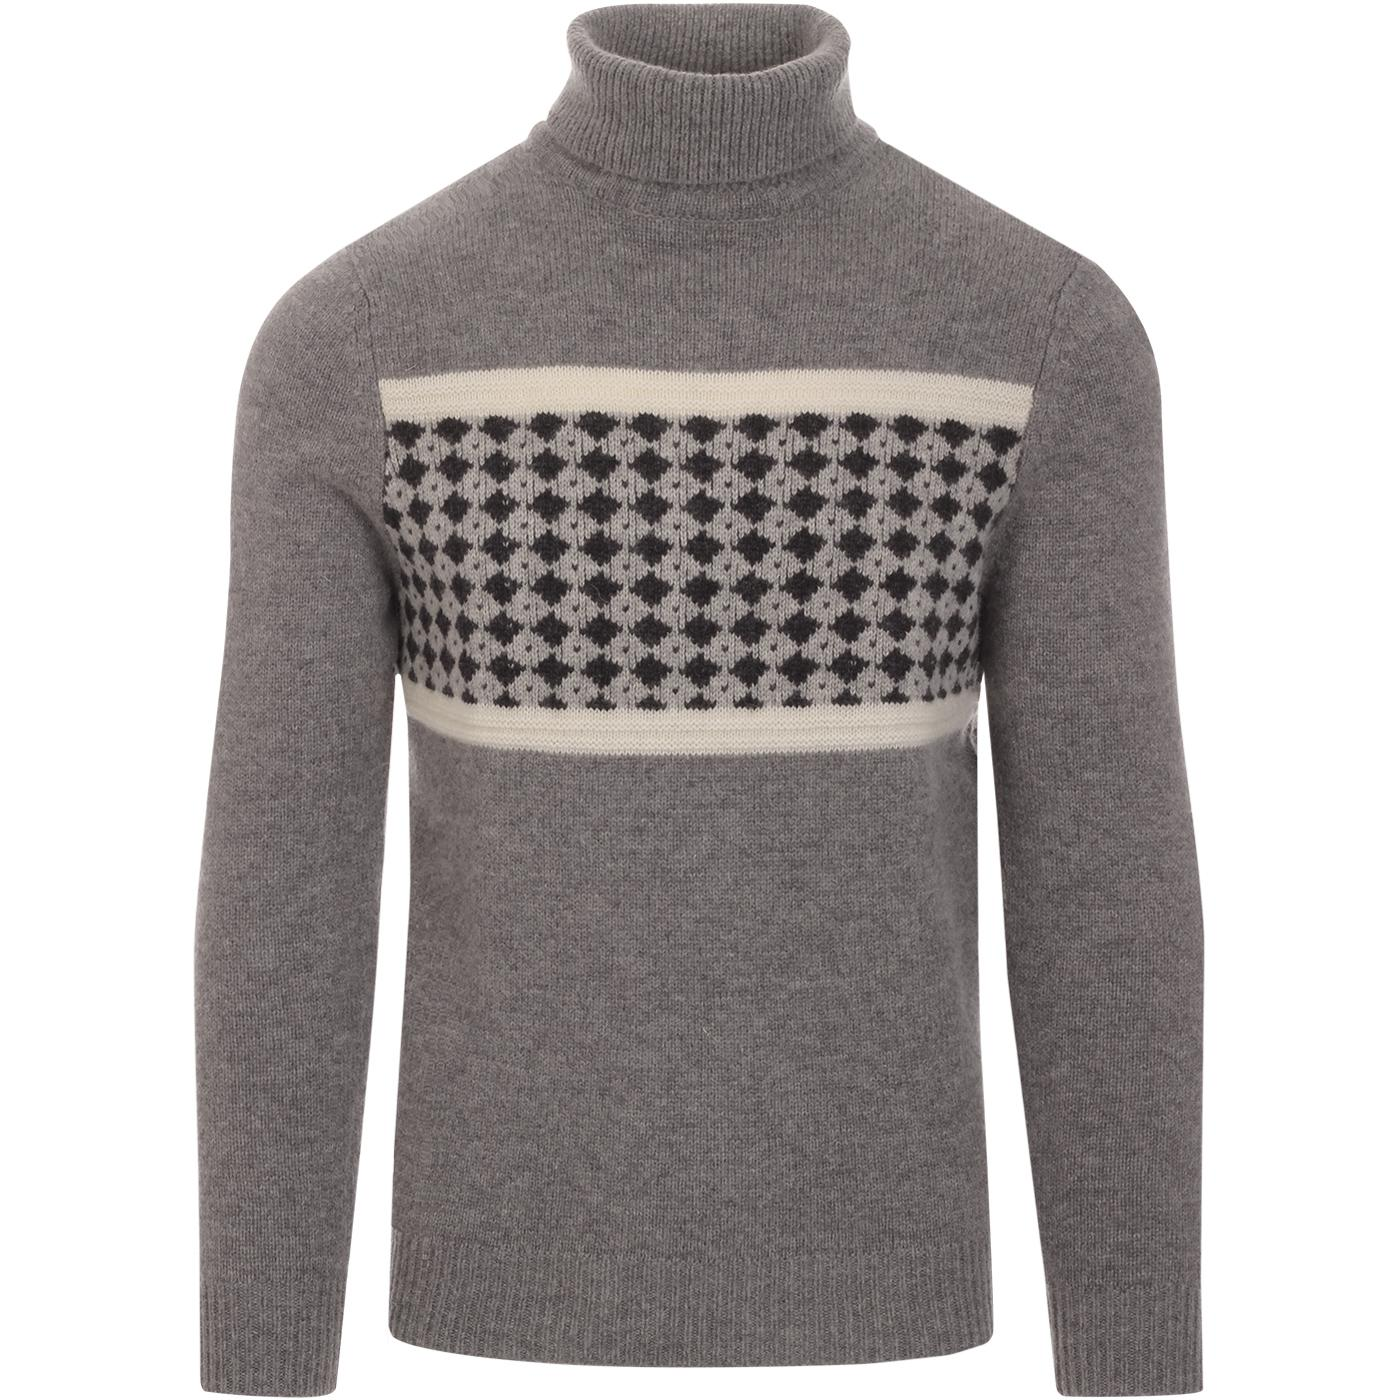 BEN SHERMAN 60s Mod Intarsia Knit Roll Neck Jumper